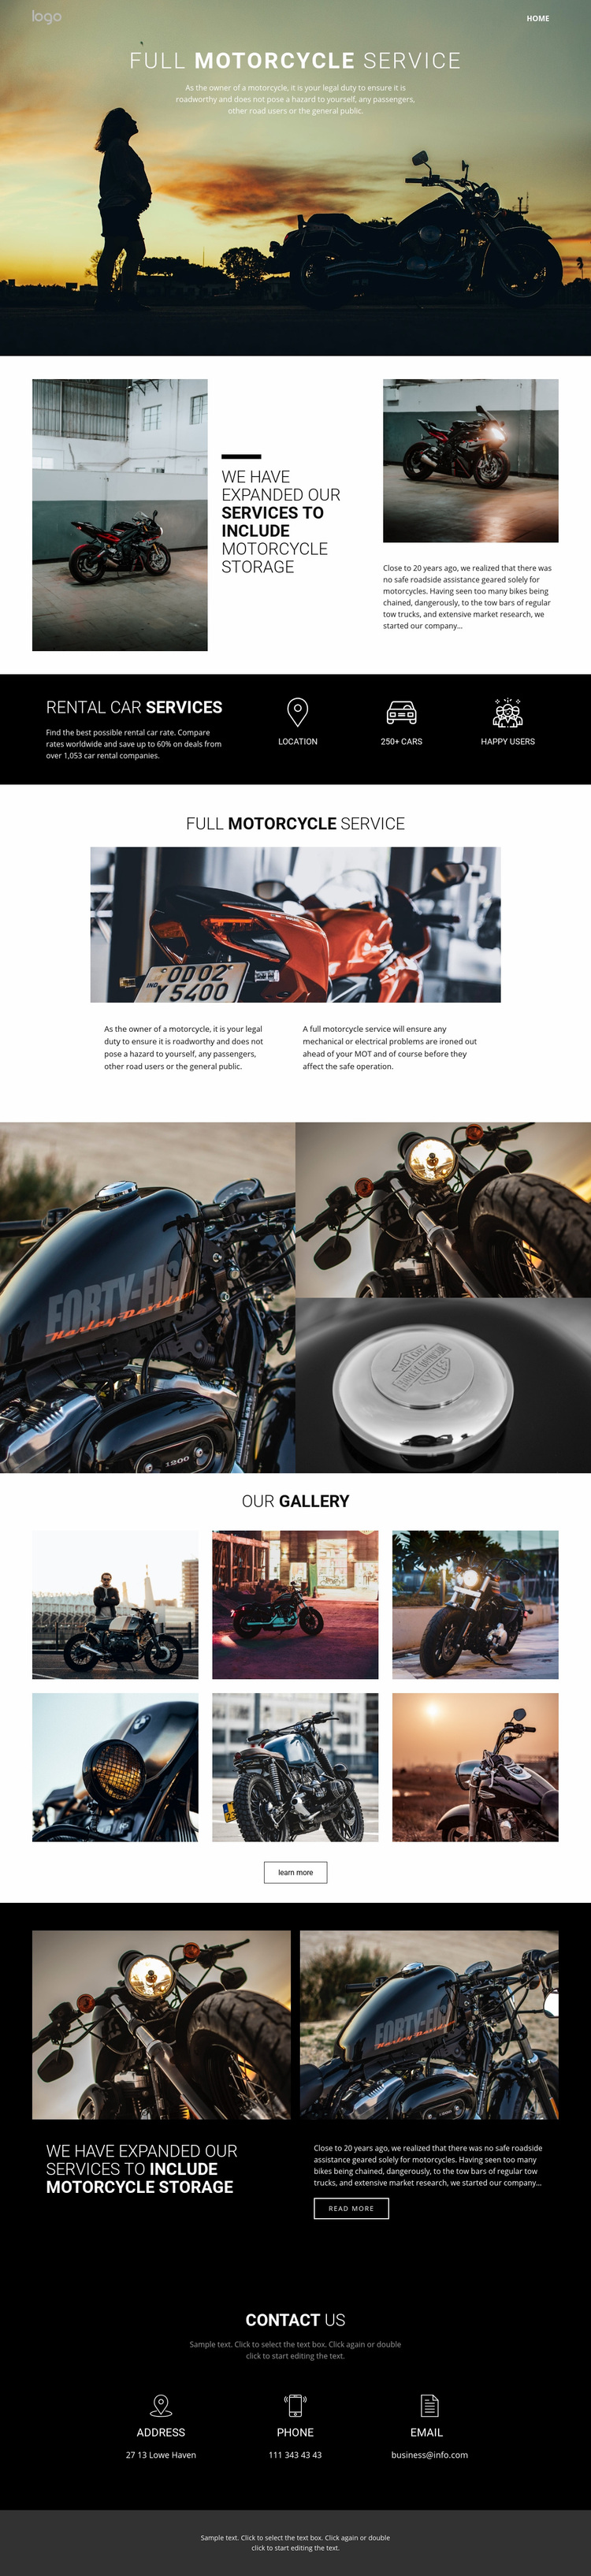 Caring for cycles and cars Web Page Designer